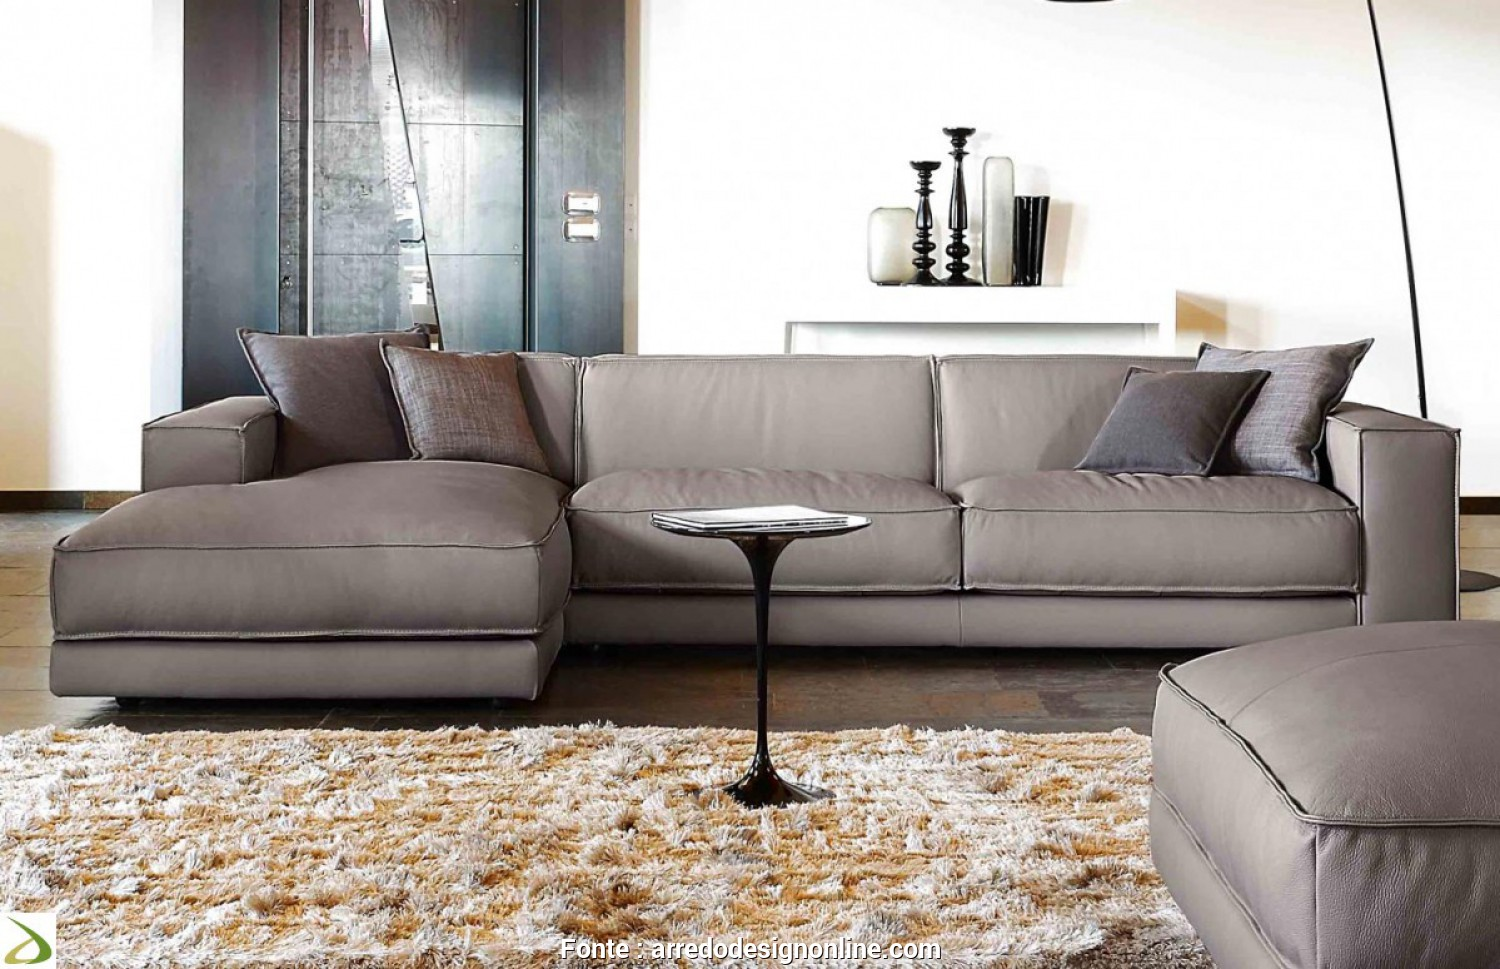 Divano Chaise Longue, Cm, Casuale Design Sofa With Leather Penisola